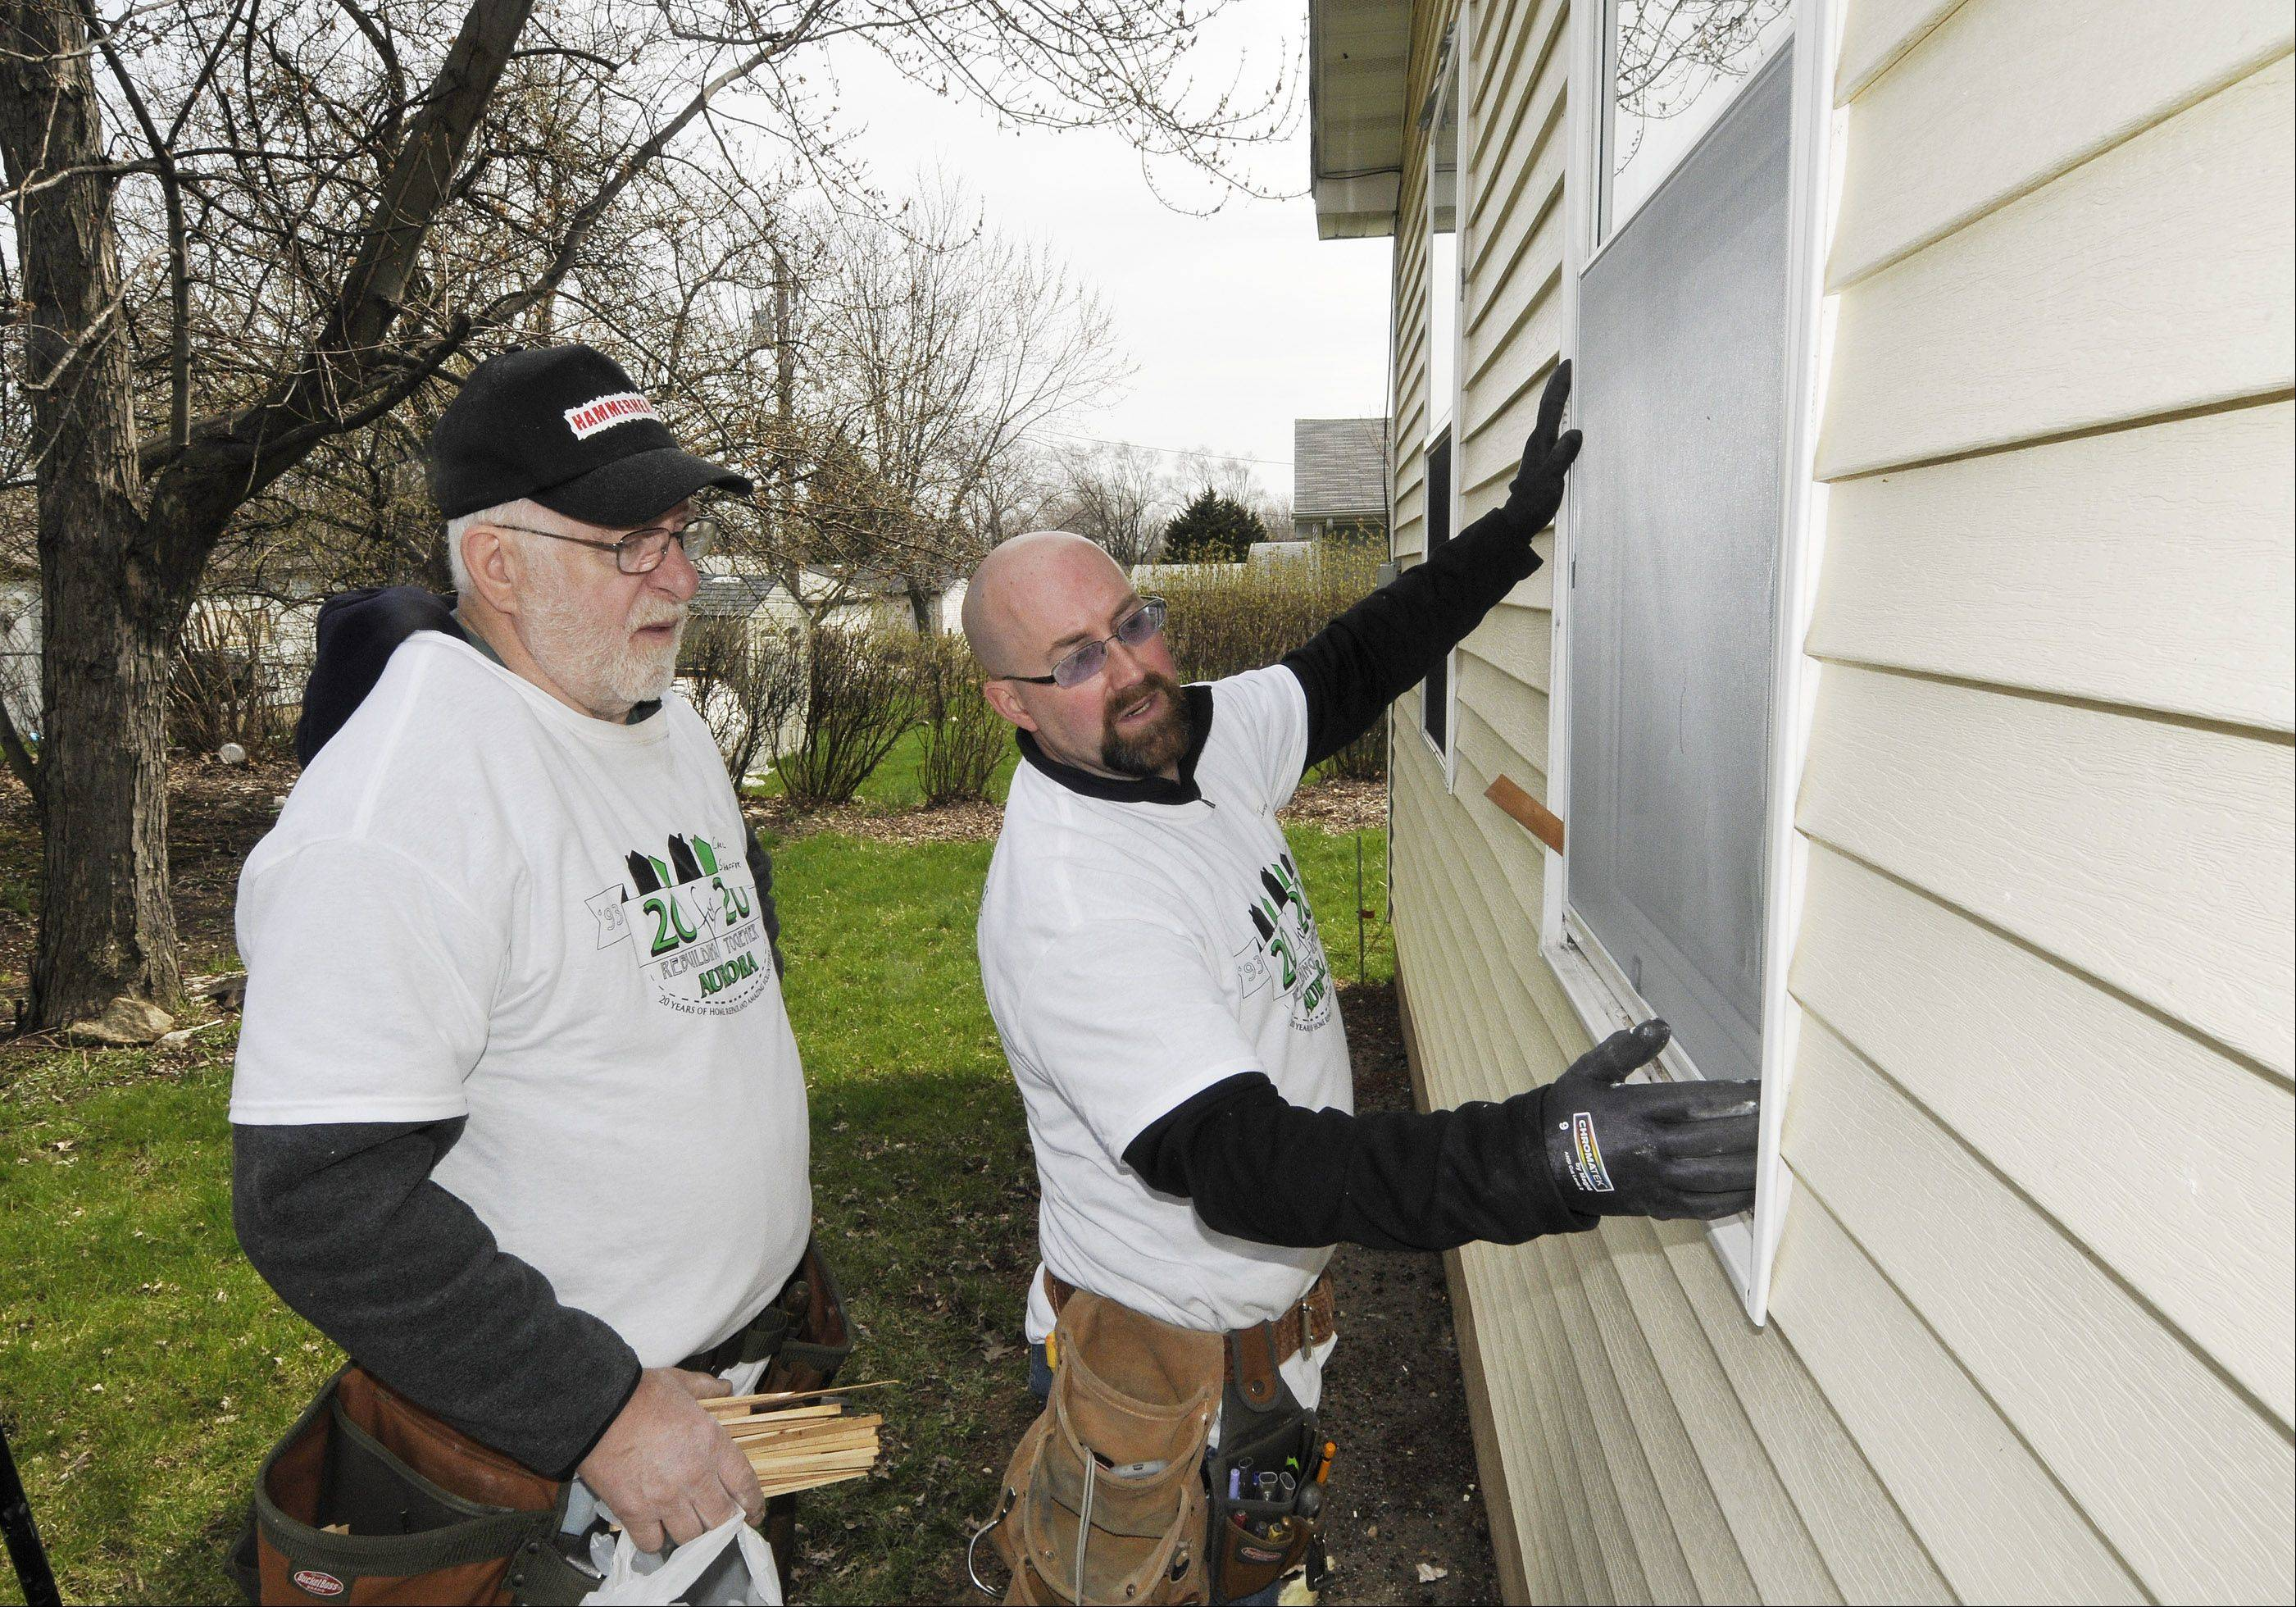 Rebuilding Together Aurora, a housing organization of volunteers, spent Friday making repairs to about 20 homes and businesses in Aurora. This is the 20th anniversary of the nonprofit organization's annual April home rebuilding events. Carl Shaffer, left, and Keith Johnson, right, install a window in one of the 20 houses to replace one with a bullet hole in it. They are from Community Christian Church in Naperville.